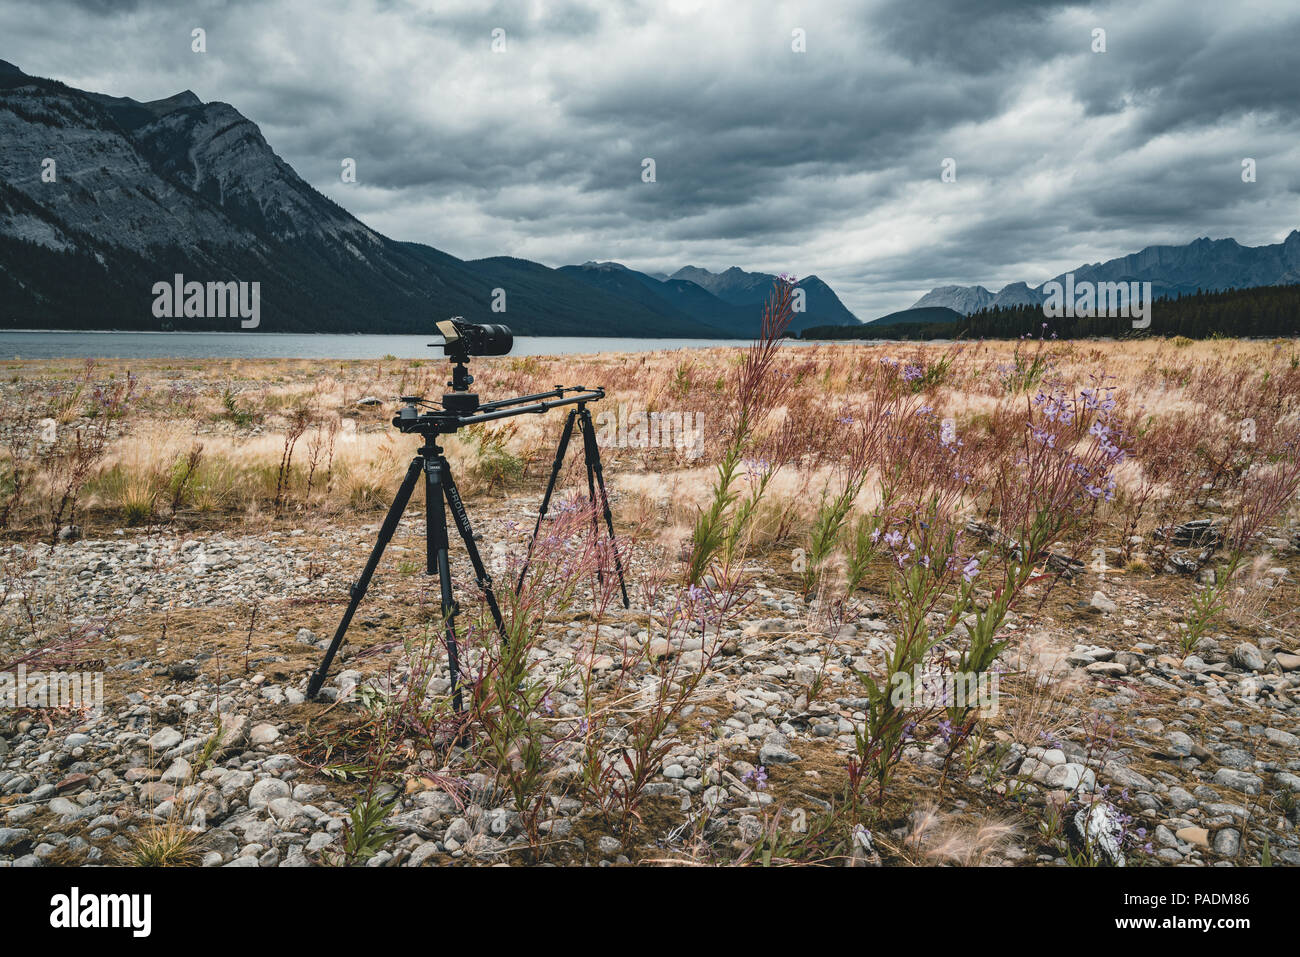 Timelapse slider setup with campera tripod across Isolated Peak and surrounding mountains and forests in Banff National Park in the Rocky Mountains in Alberta, Canada. - Stock Image